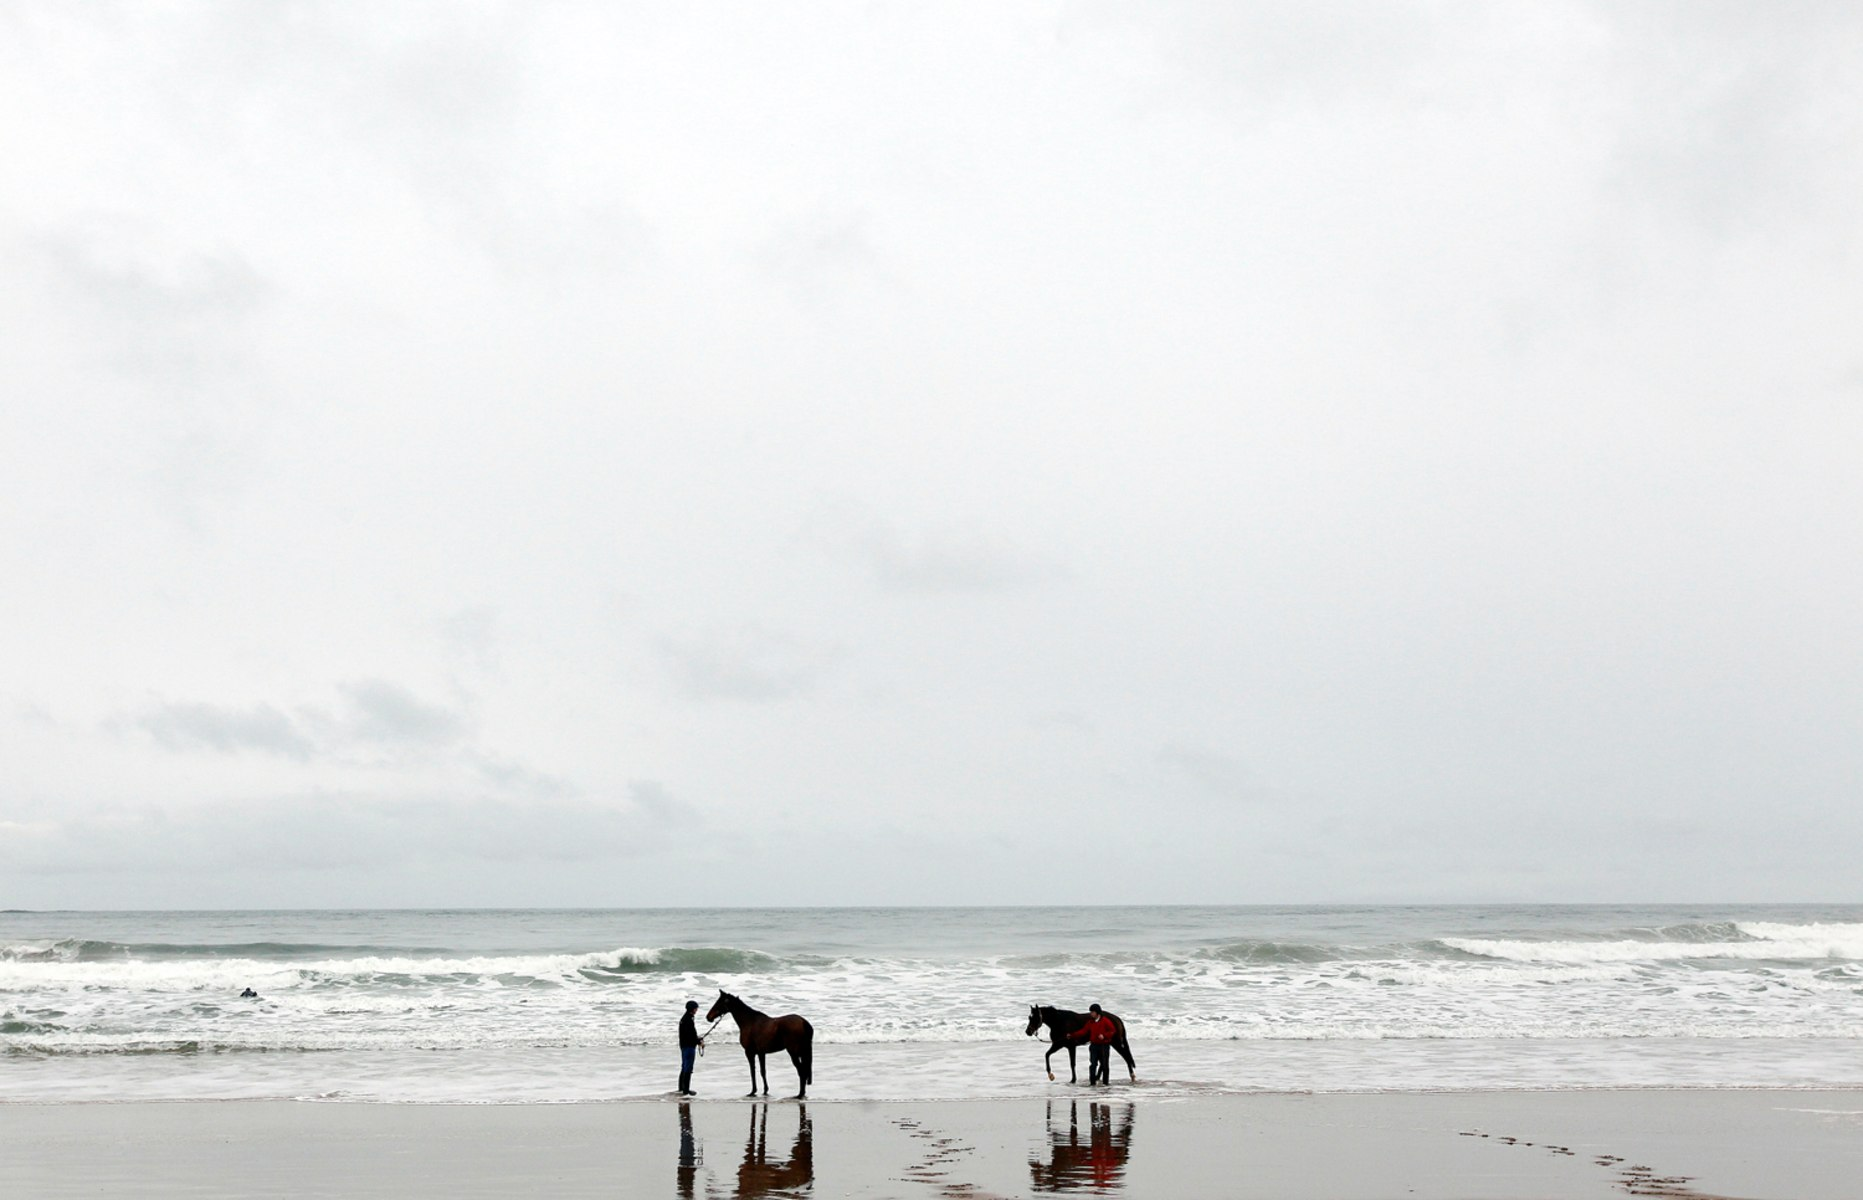 Image: Trainers exercise their thoroughbred point to point horses along the White Rocks beach near the town of Portrush on the North Antrim Coast